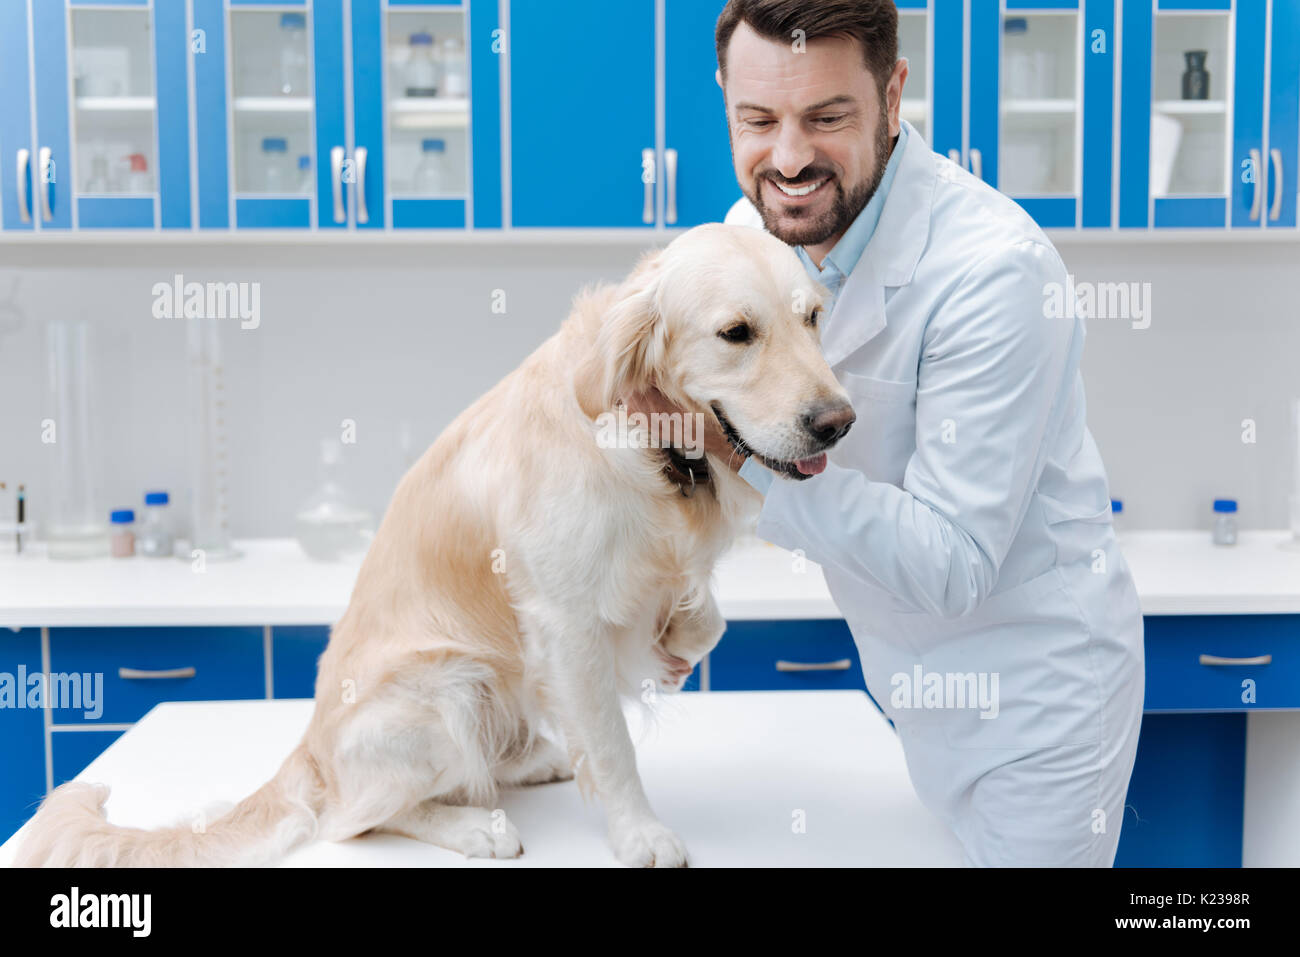 Competent doctor for animals expressing positivity - Stock Image